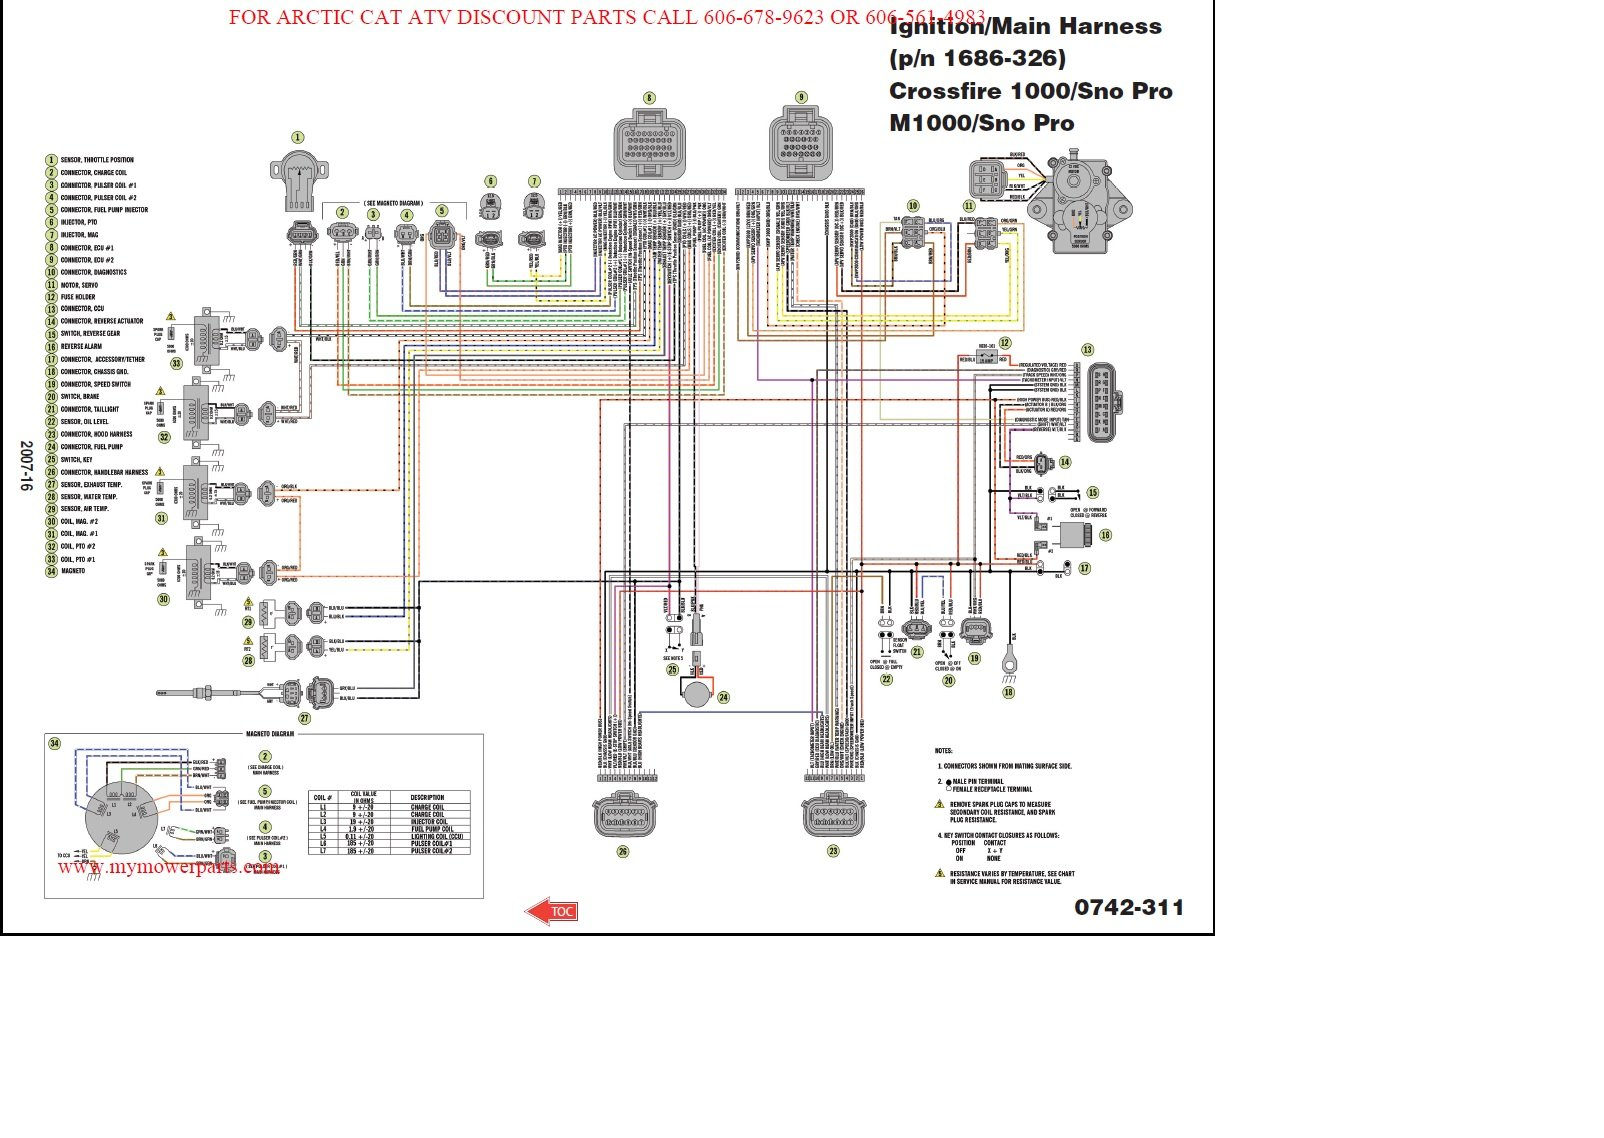 2001 case 580 m wiring diagram